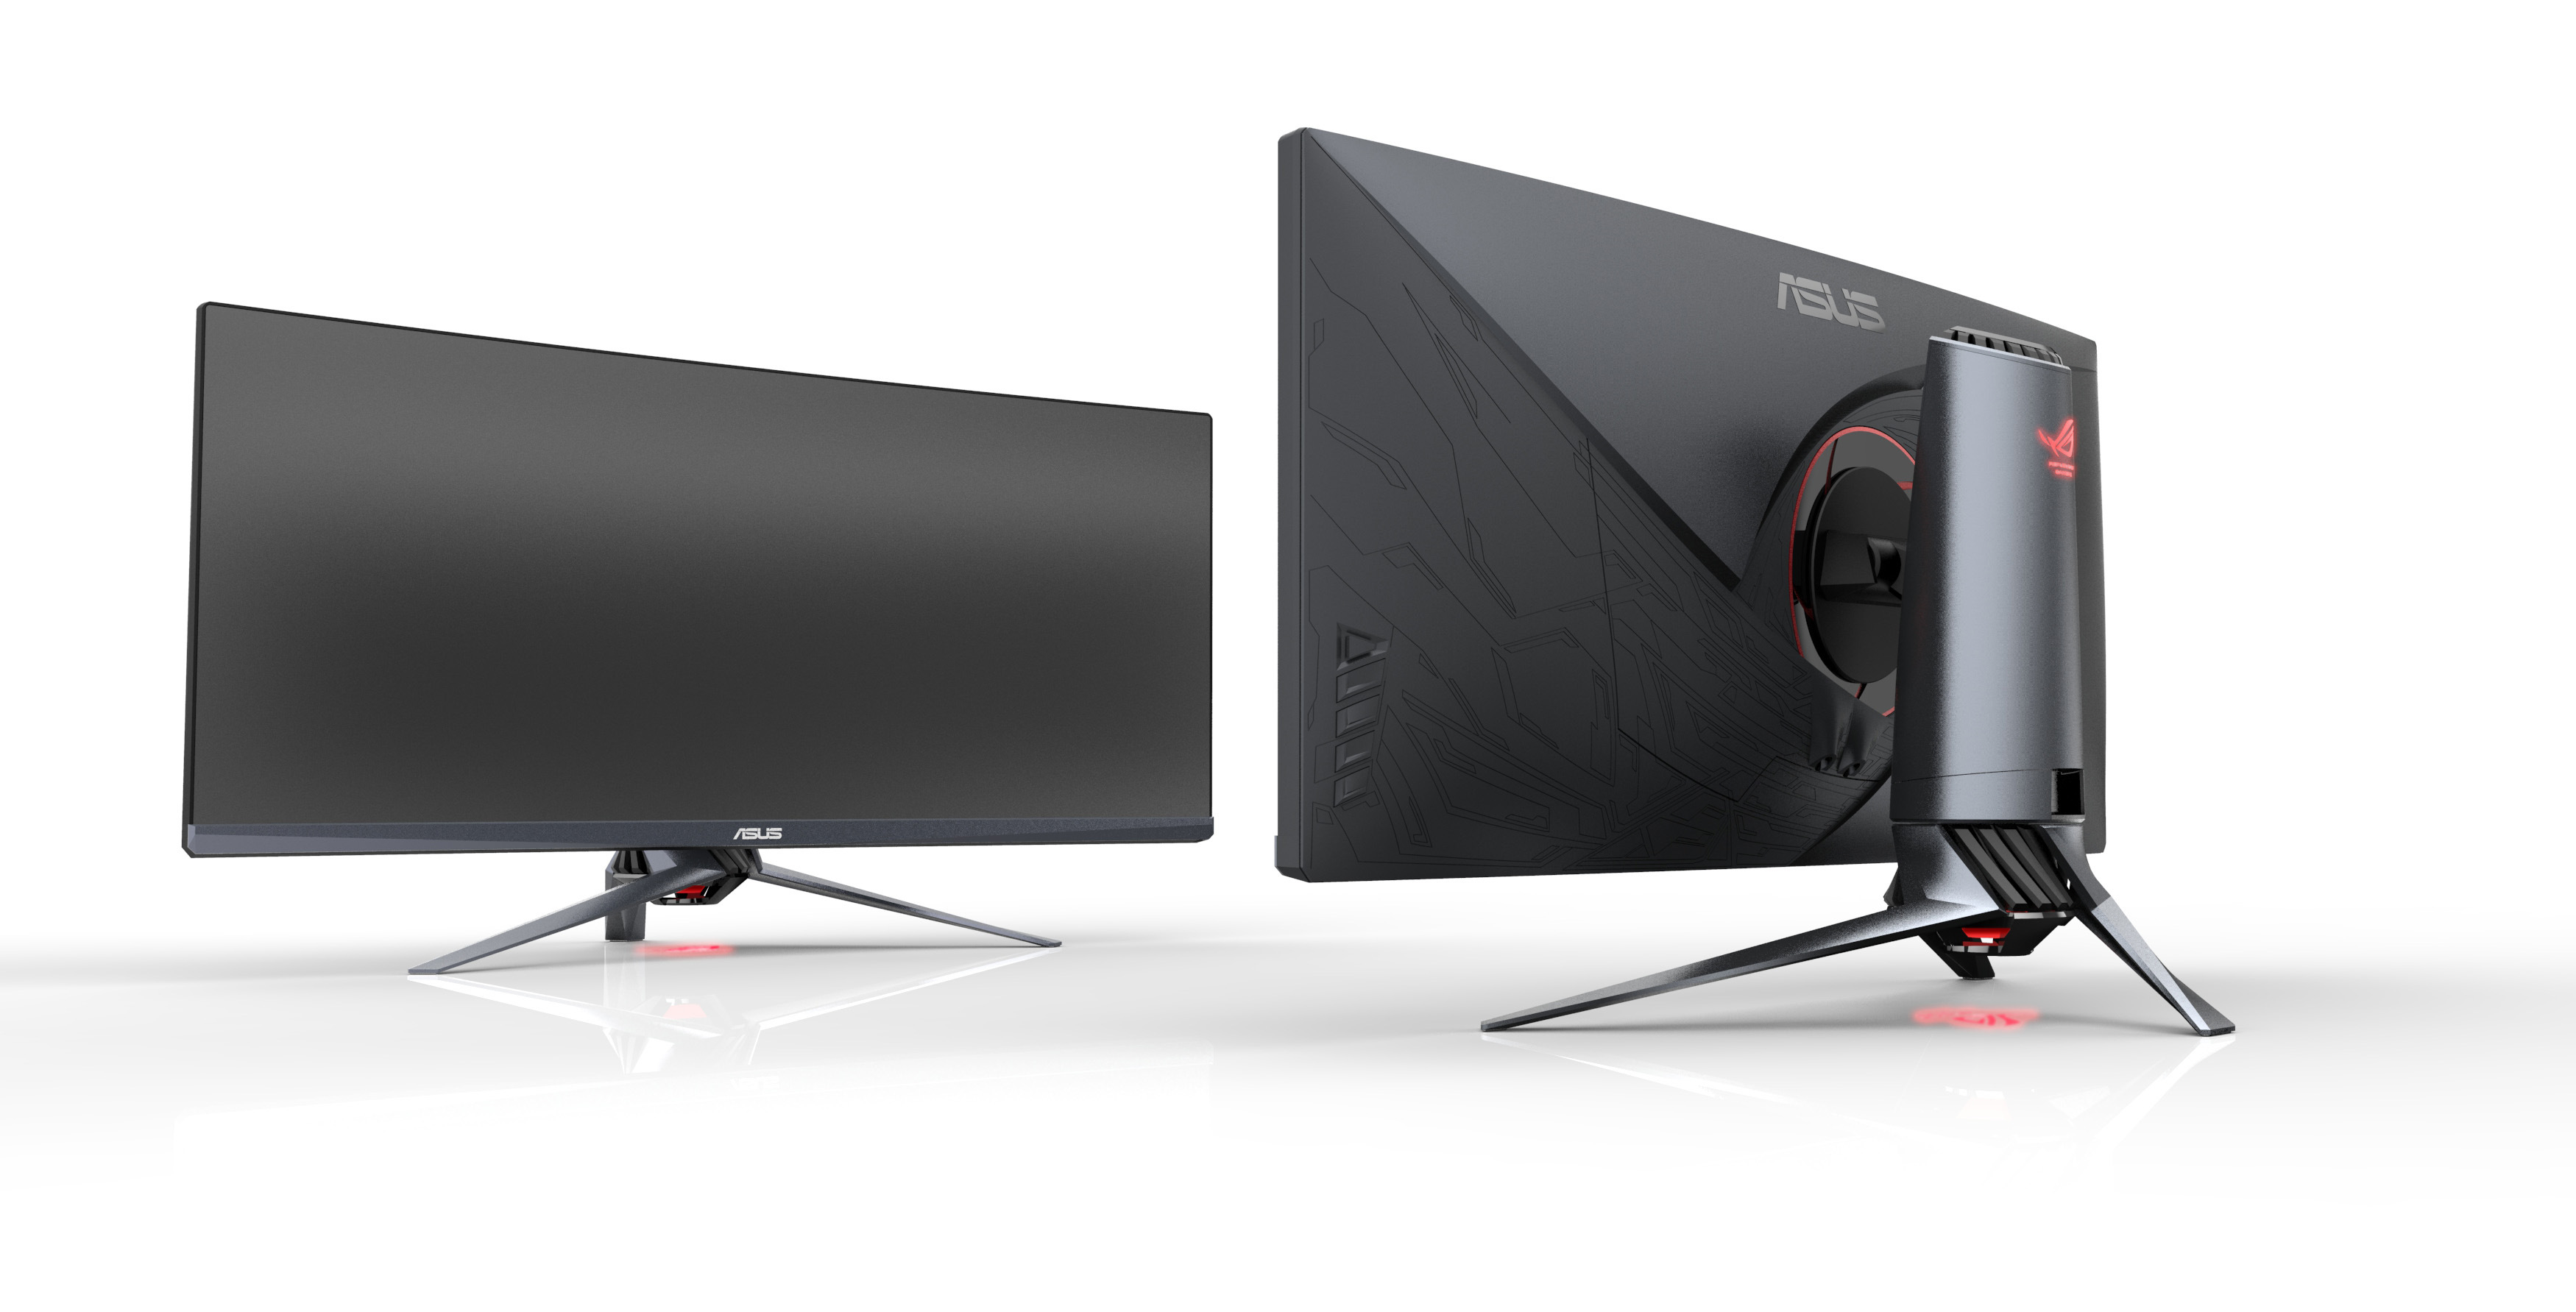 ROG-34-inch-curved-gaming-monitor